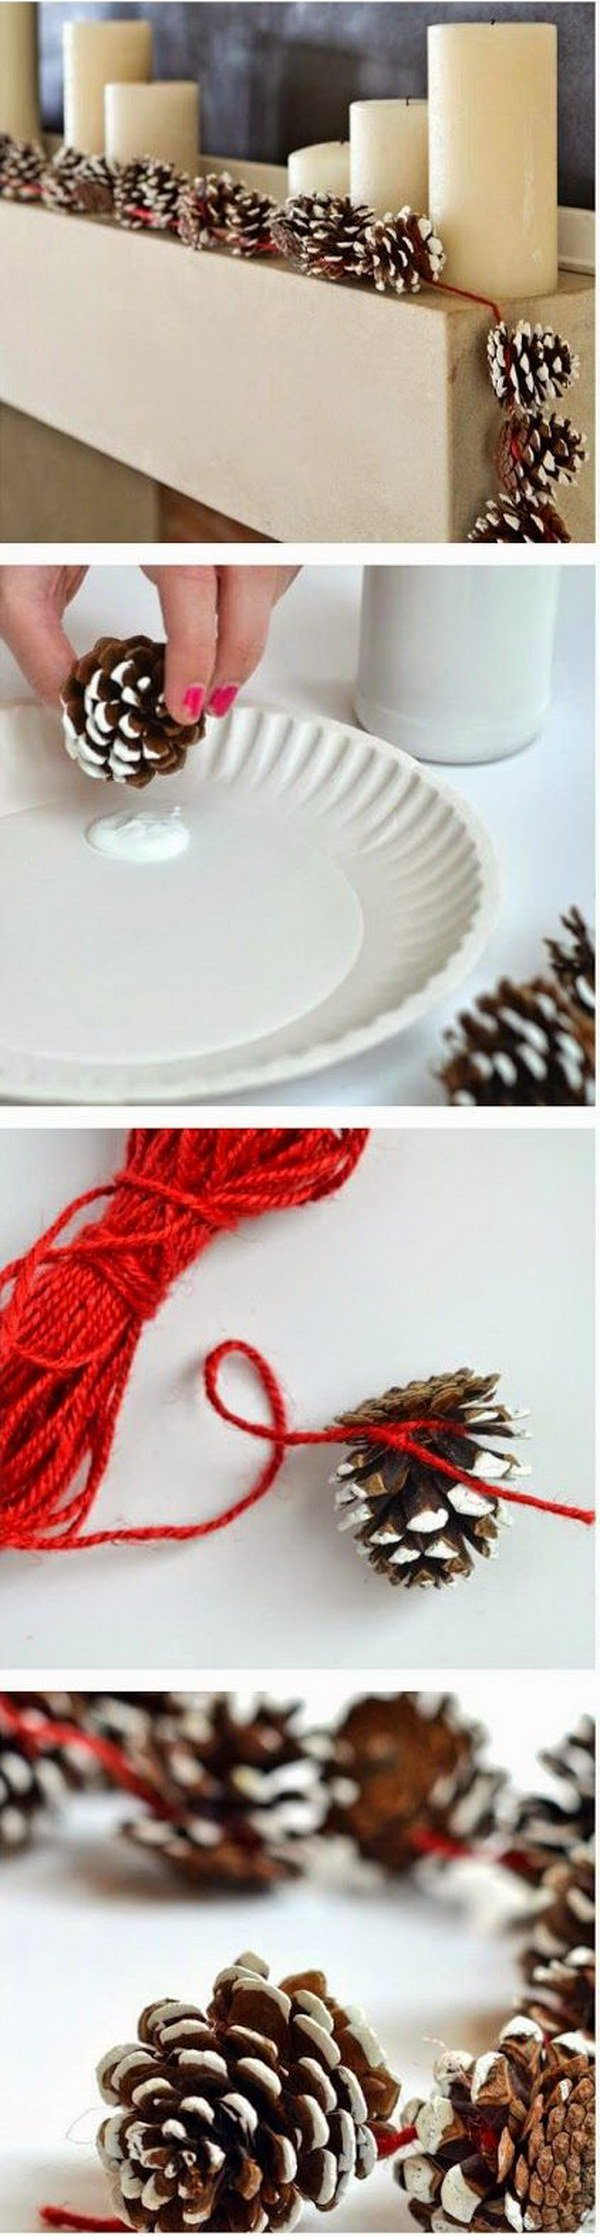 7 Adorable DIY Pine Cone Crafts